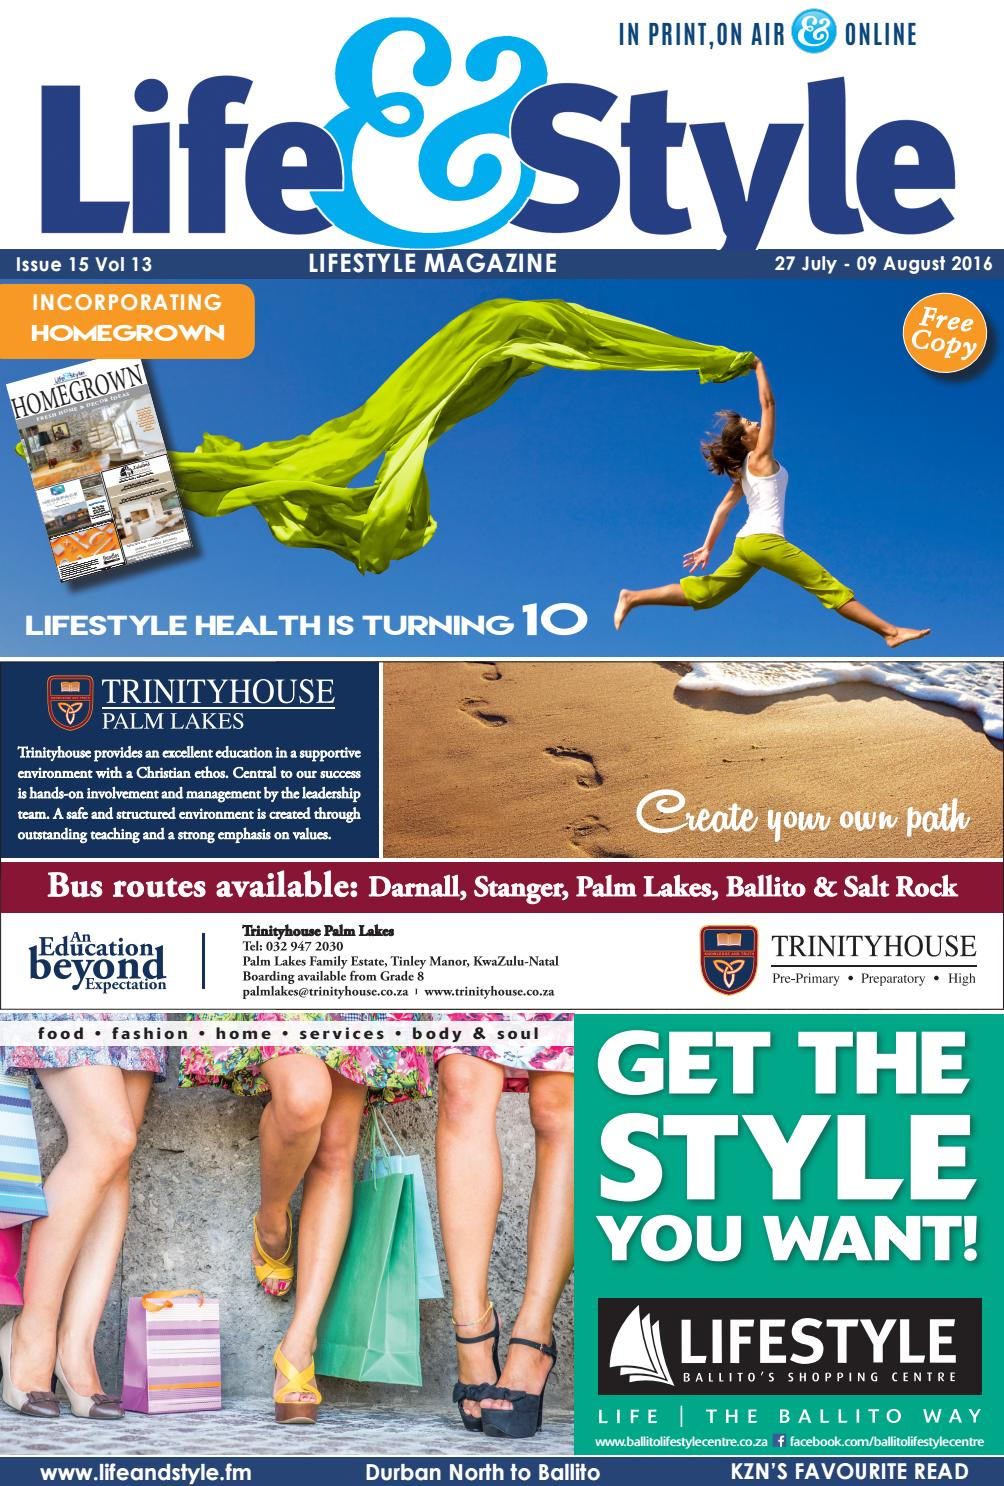 Life & style issue15 by Life & Style - issuu